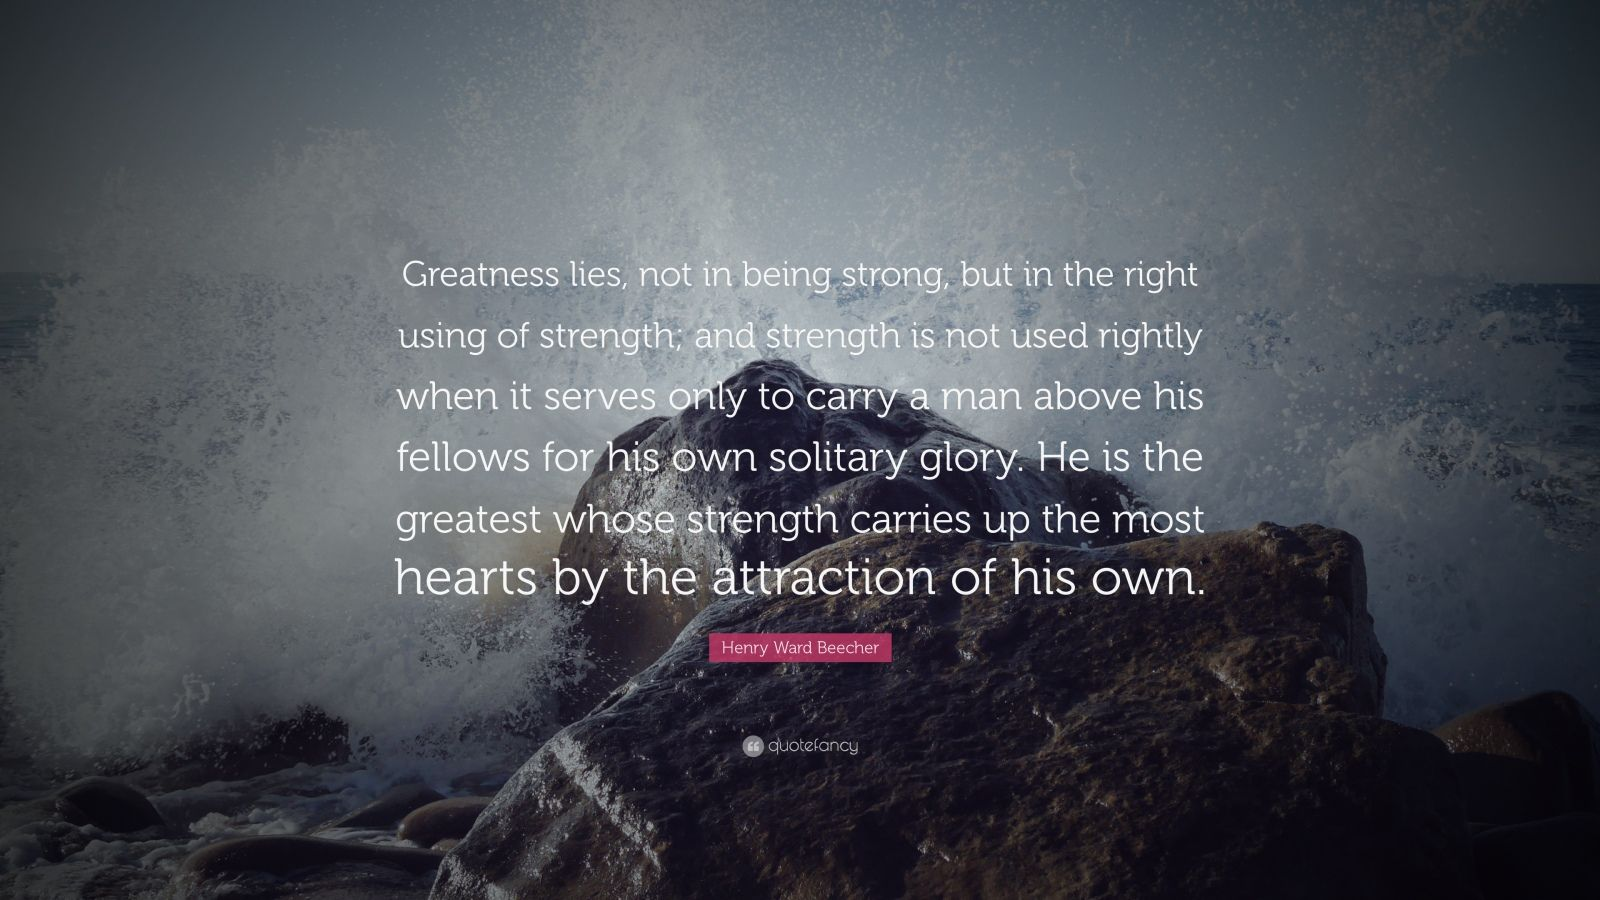 """Henry Ward Beecher Quote: """"Greatness lies, not in being strong, but in the right using of strength; and strength is not used rightly when it serves only to carry a man above his fellows for his own solitary glory. He is the greatest whose strength carries up the most hearts by the attraction of his own."""""""